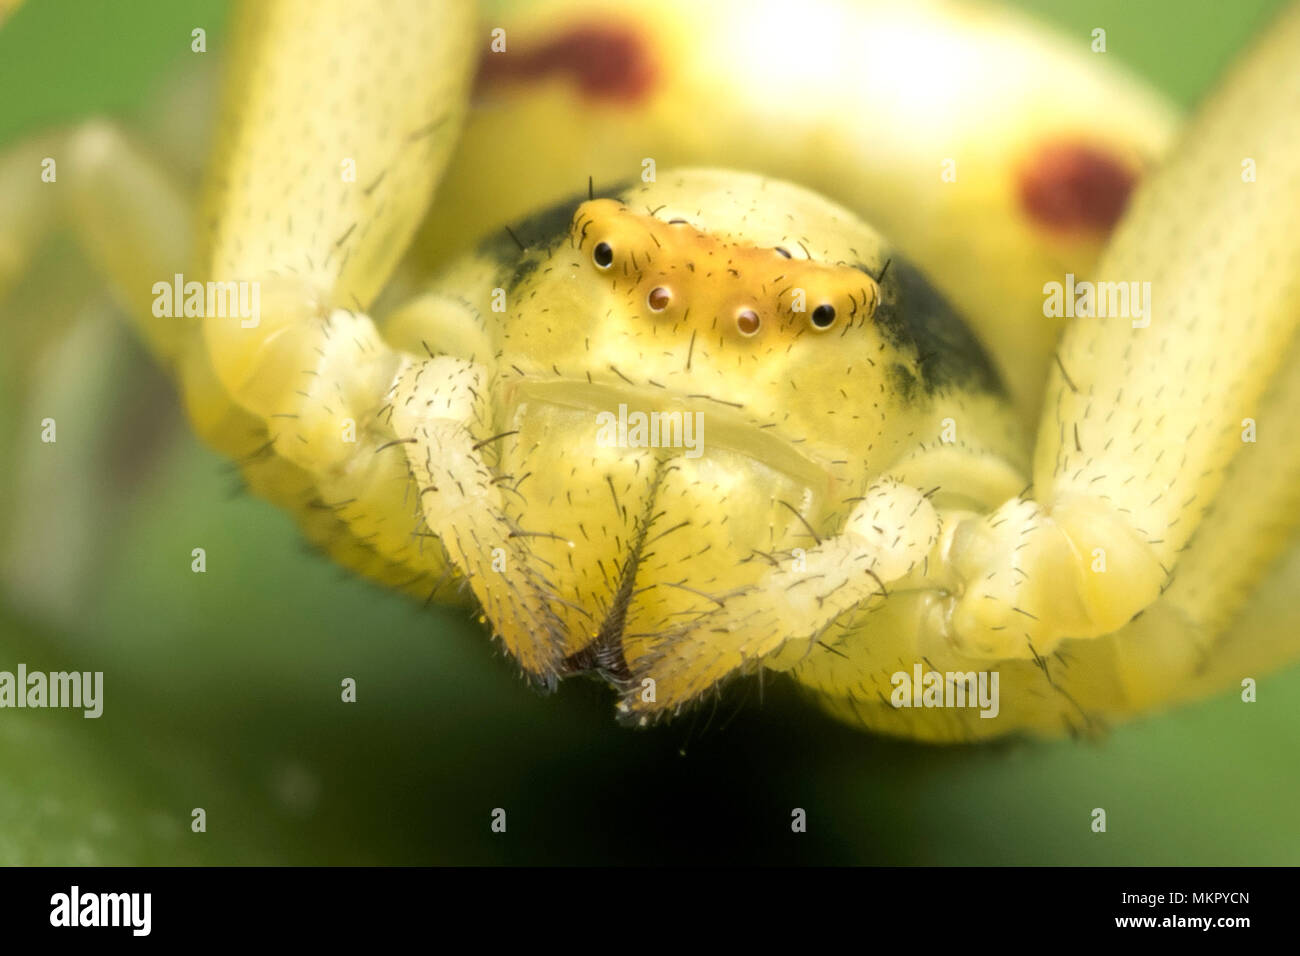 Close up of the face of a Crab spider (Misumena vatia) Tipperary, Ireland - Stock Image